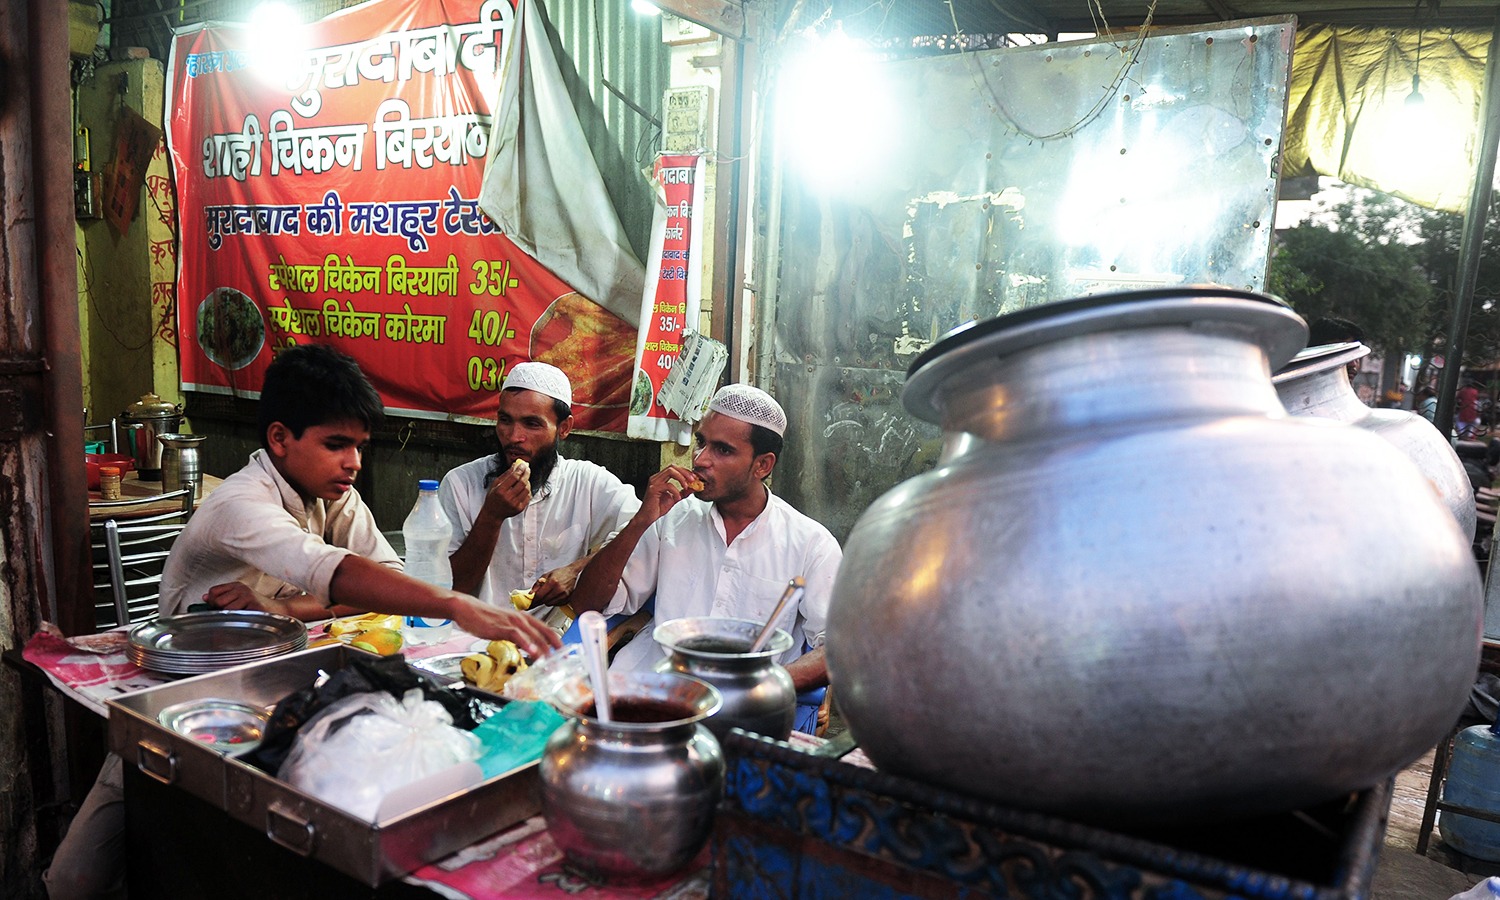 Indian Muslim shopkeepers break their fast at their place of work in Allahabad on June 17, 2016. ─ AFP